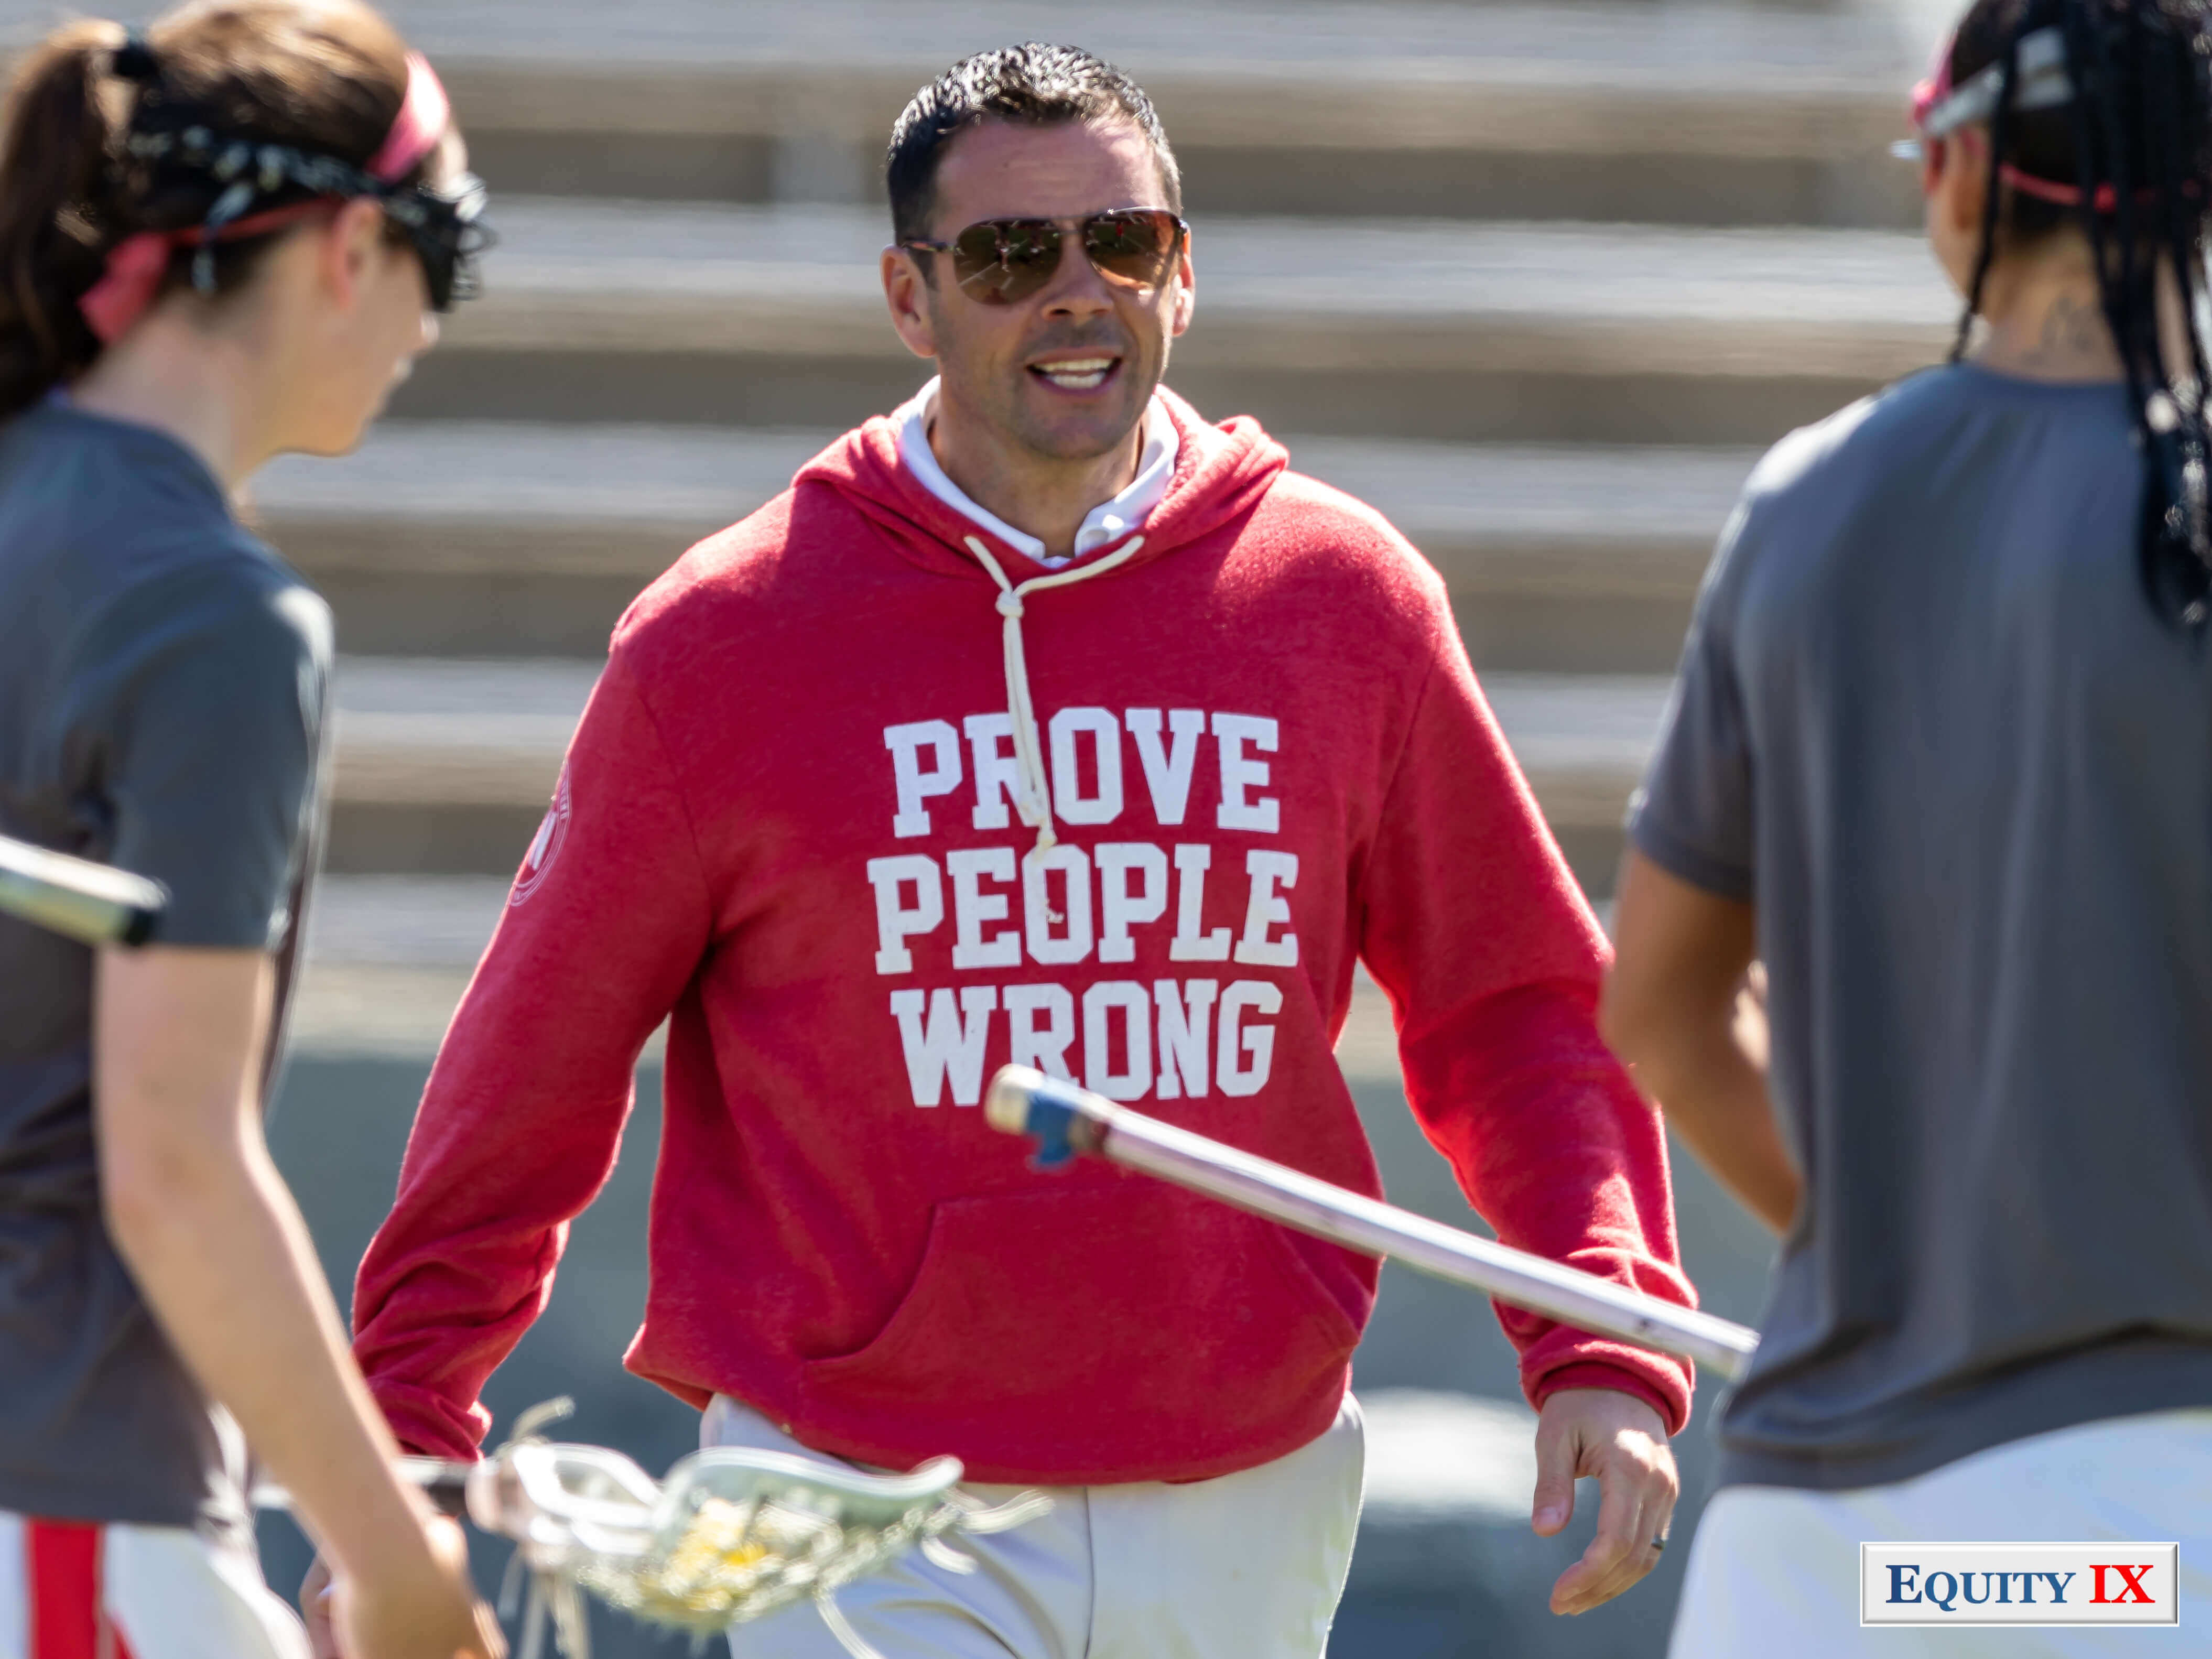 Joe Spallina - Head Coach of Stony Brook wears a red Prove People Wrong sweatshirt during warmup before a game to inspire his team to a NCAA title © Equity IX - SportsOgram - Leigh Ernst Friestedt